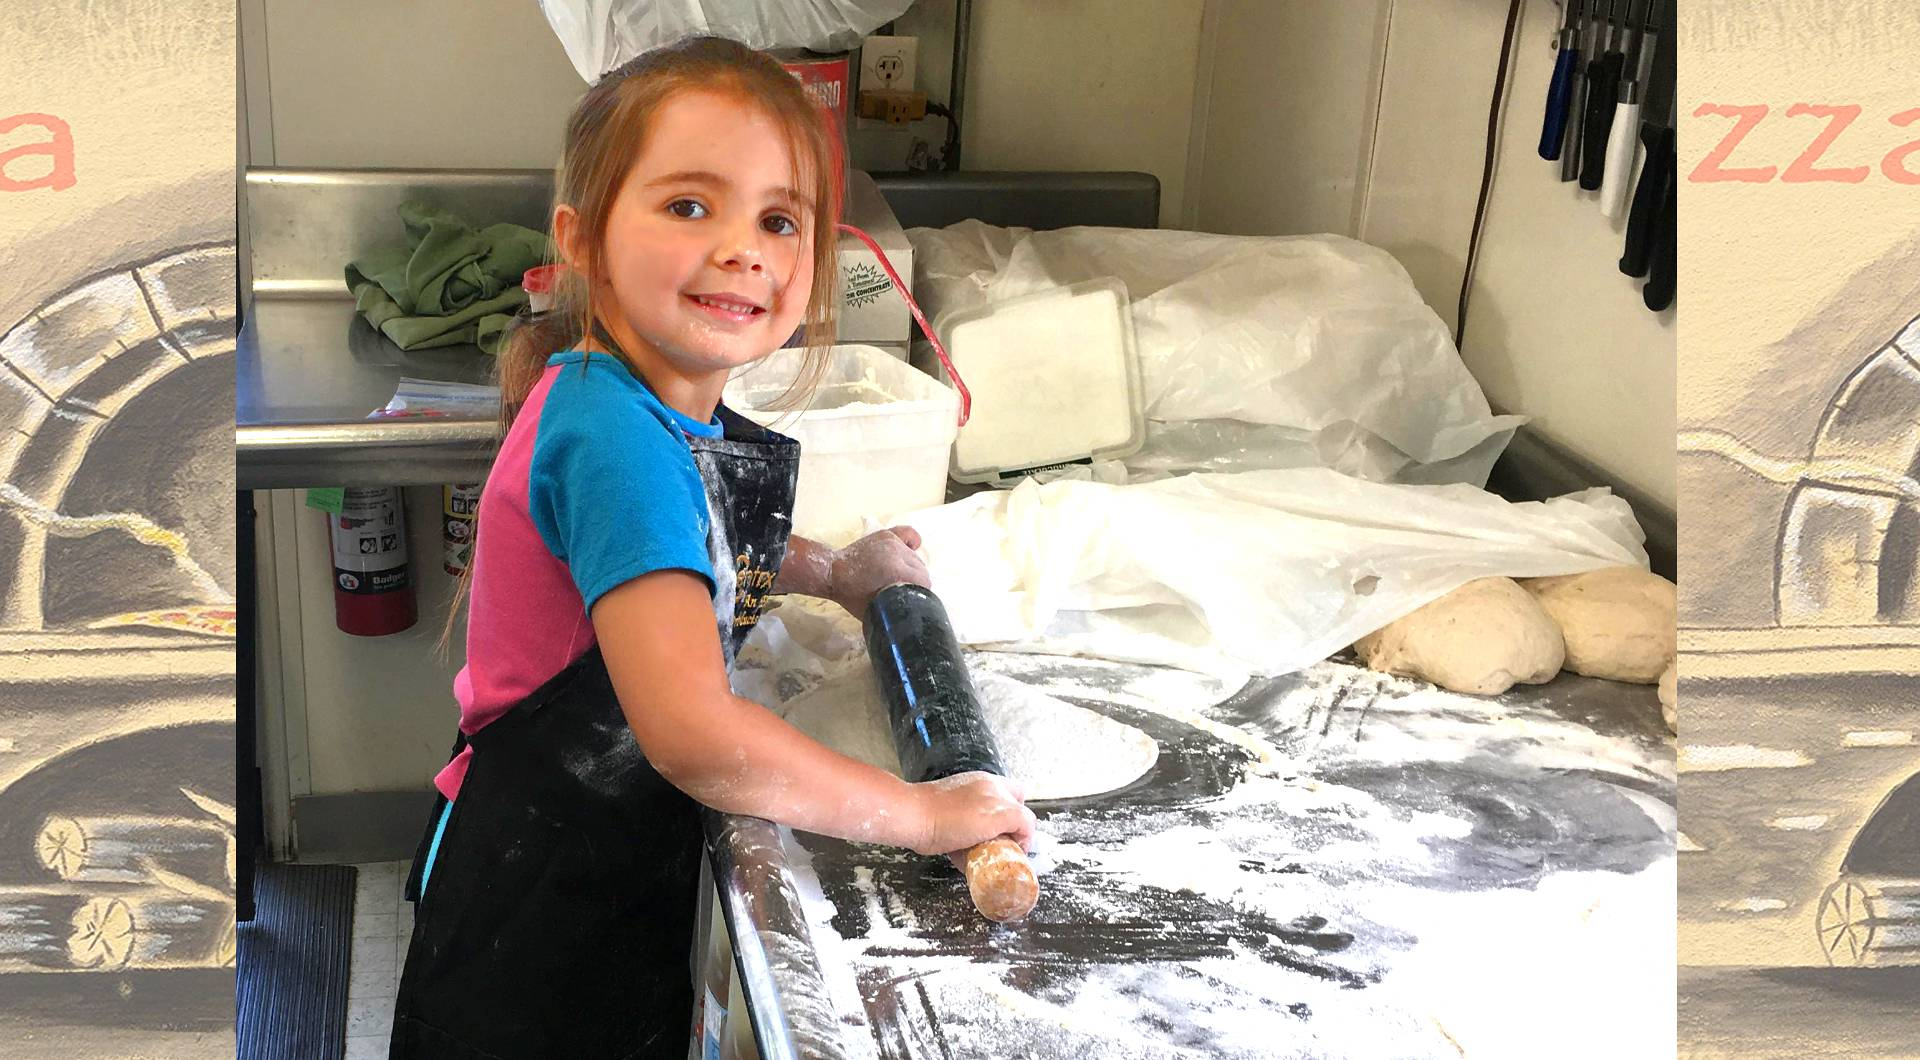 a picture of the grand daughter of the owner Val, she is rolling out some pizza dough, standing ona stool, she looks to be about 5 years old, it's a very cute picture